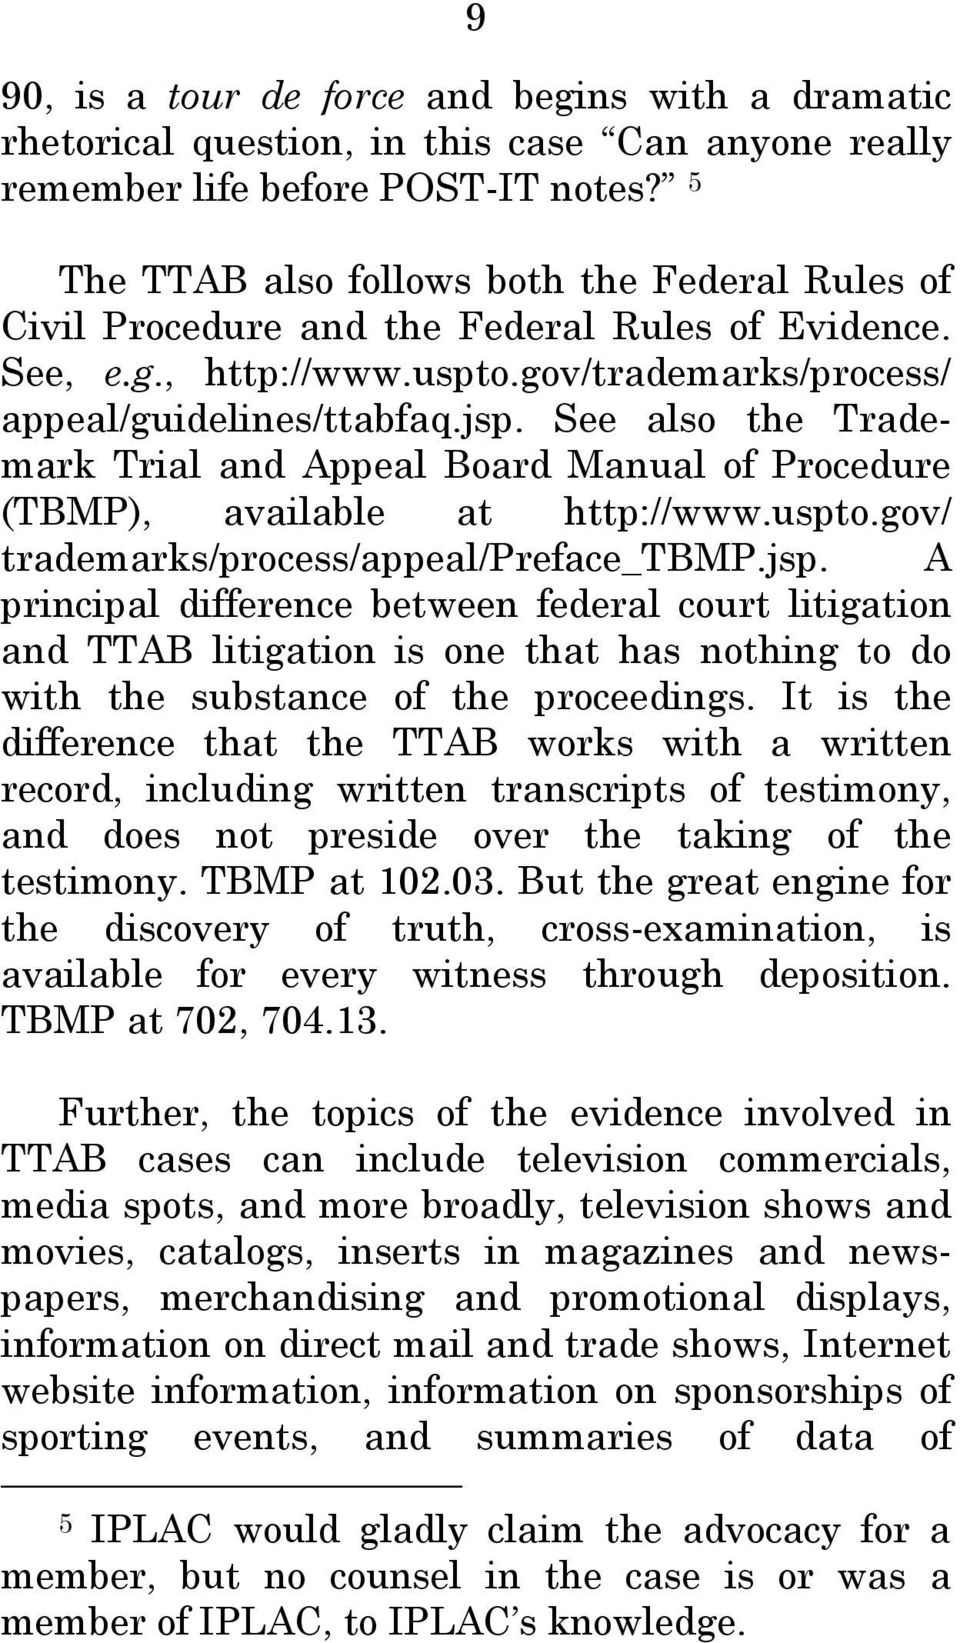 See also the Trademark Trial and Appeal Board Manual of Procedure (TBMP), available at http://www.uspto.gov/ trademarks/process/appeal/preface_tbmp.jsp.